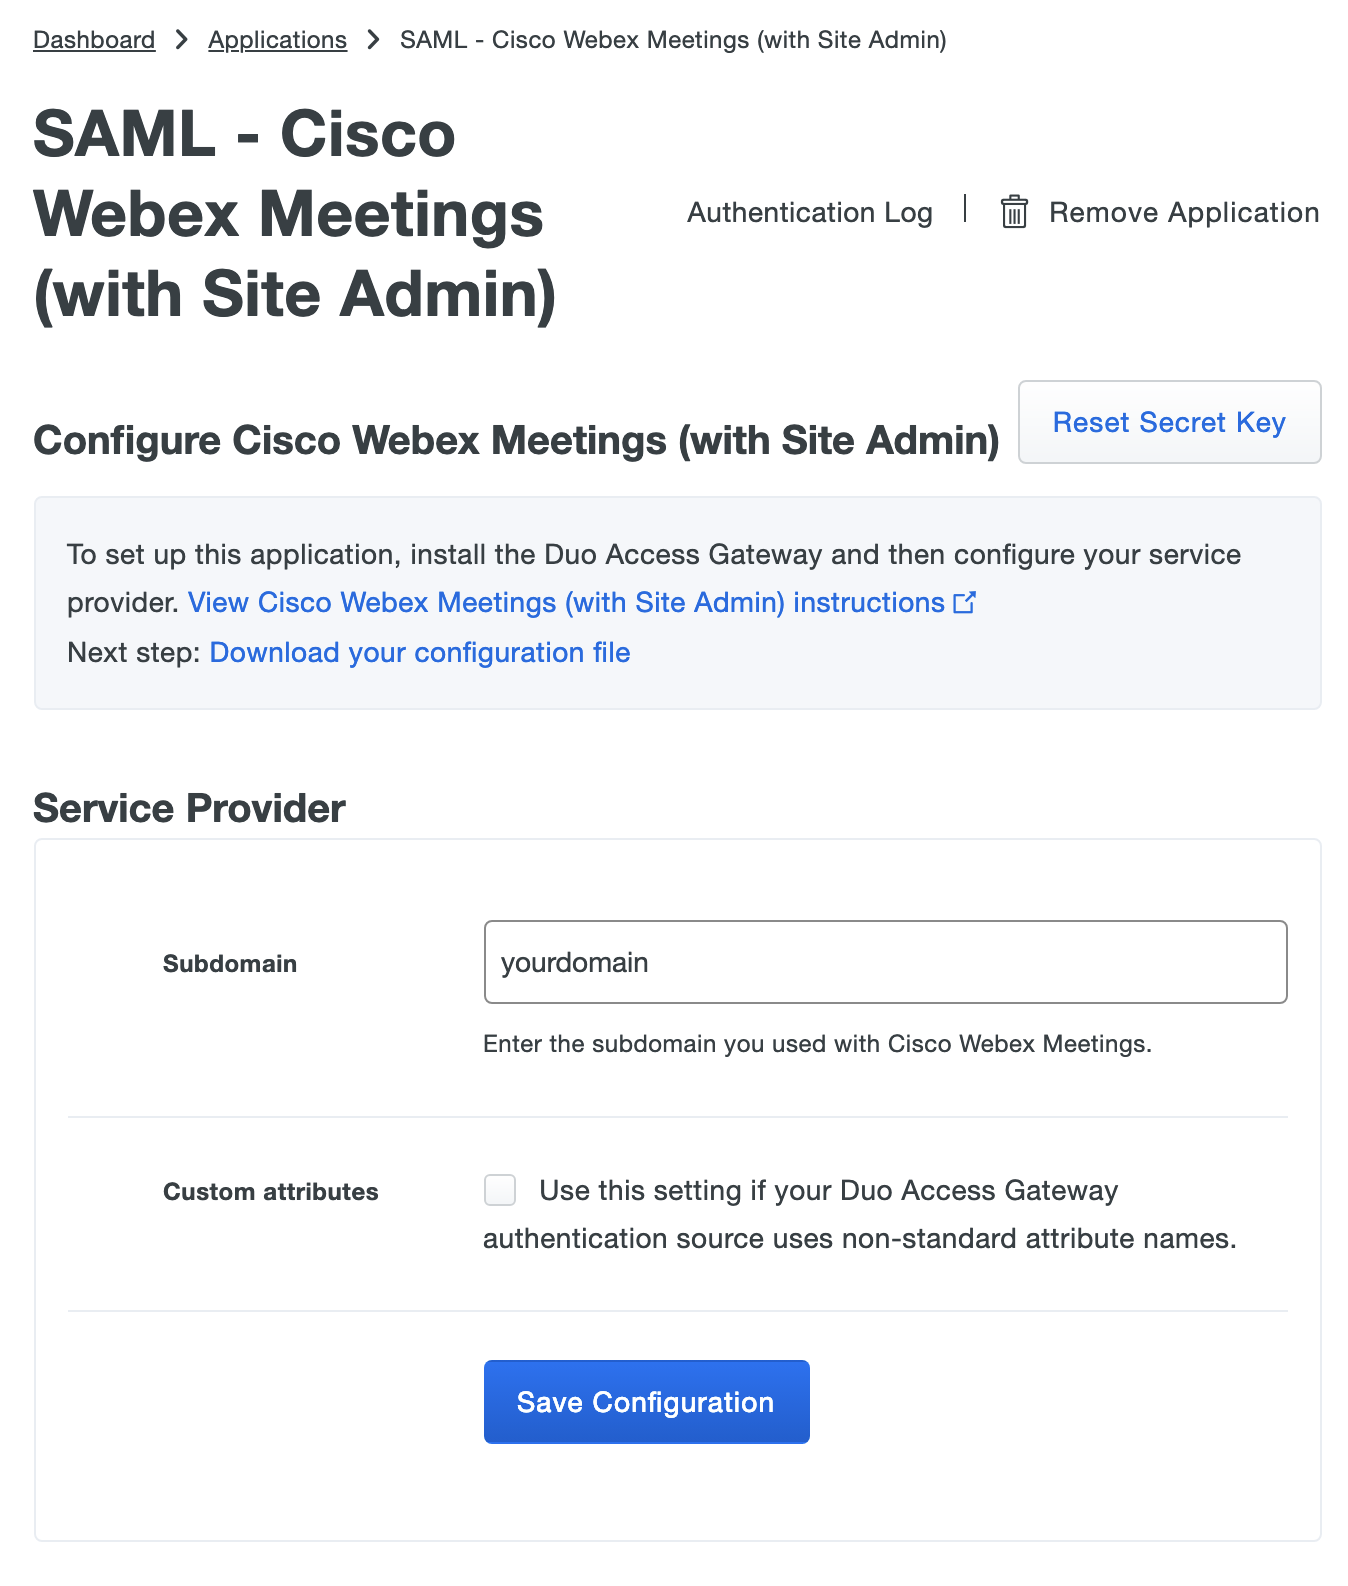 Duo Webex Meetings Application Settings